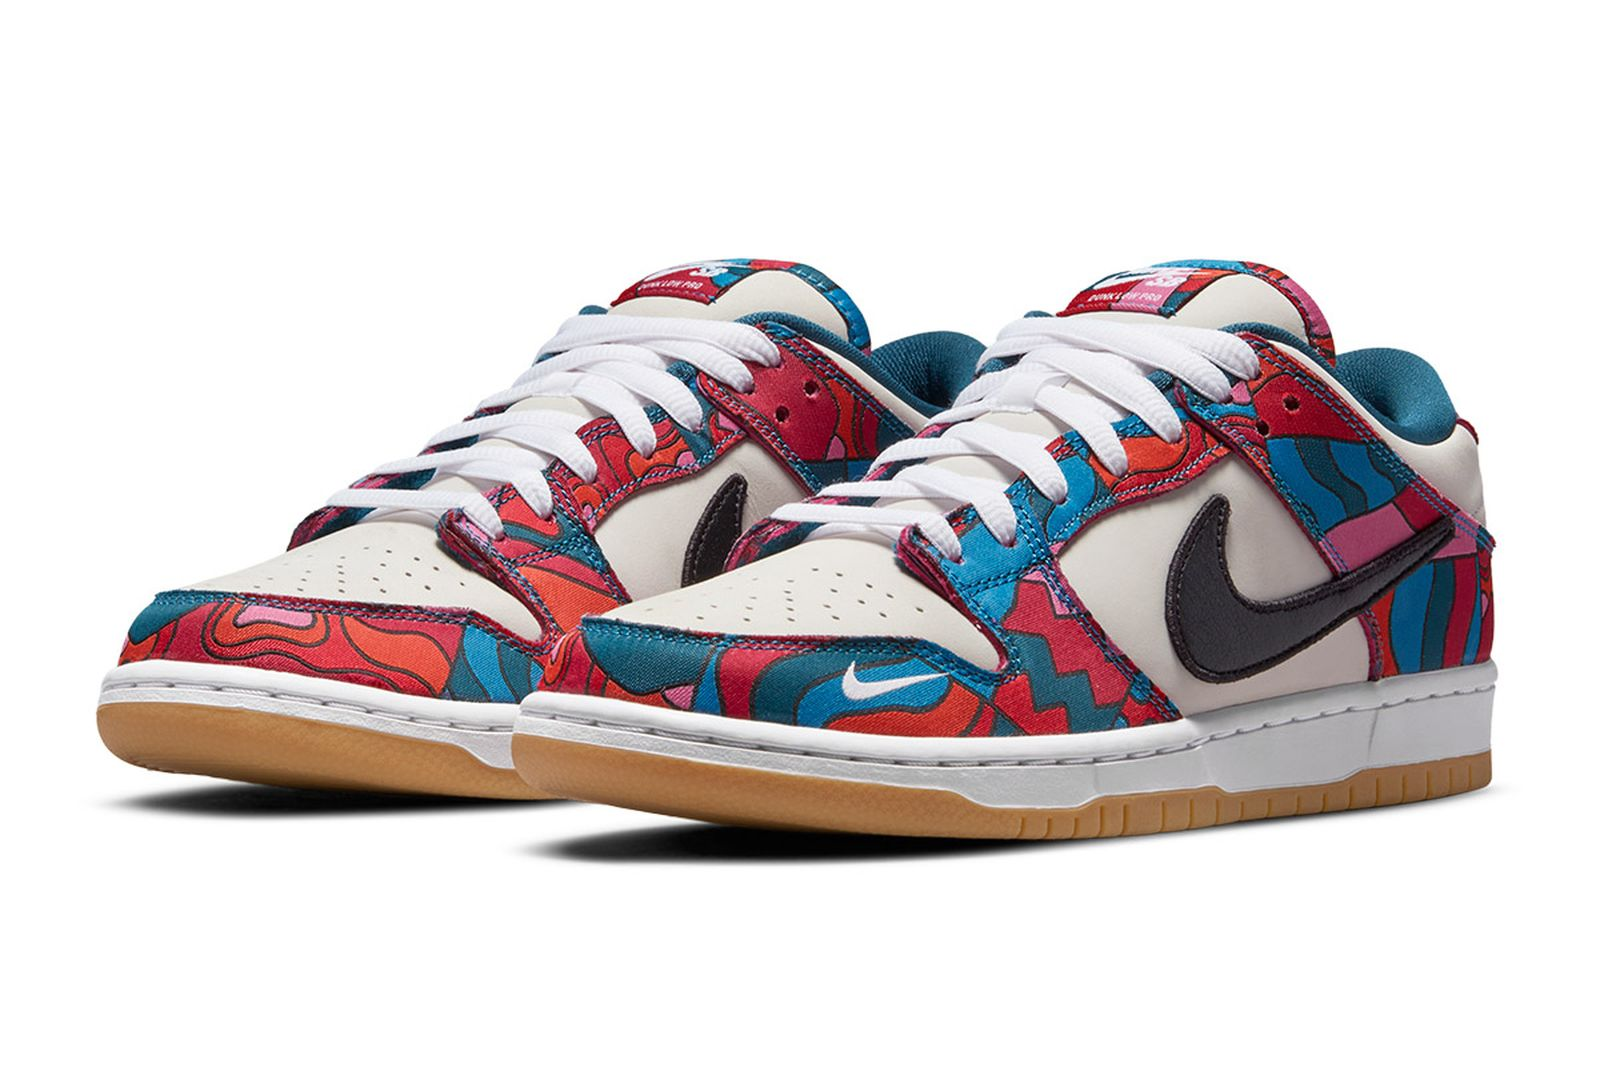 nike-sb-dunk-olympics-pack-release-date-price-06